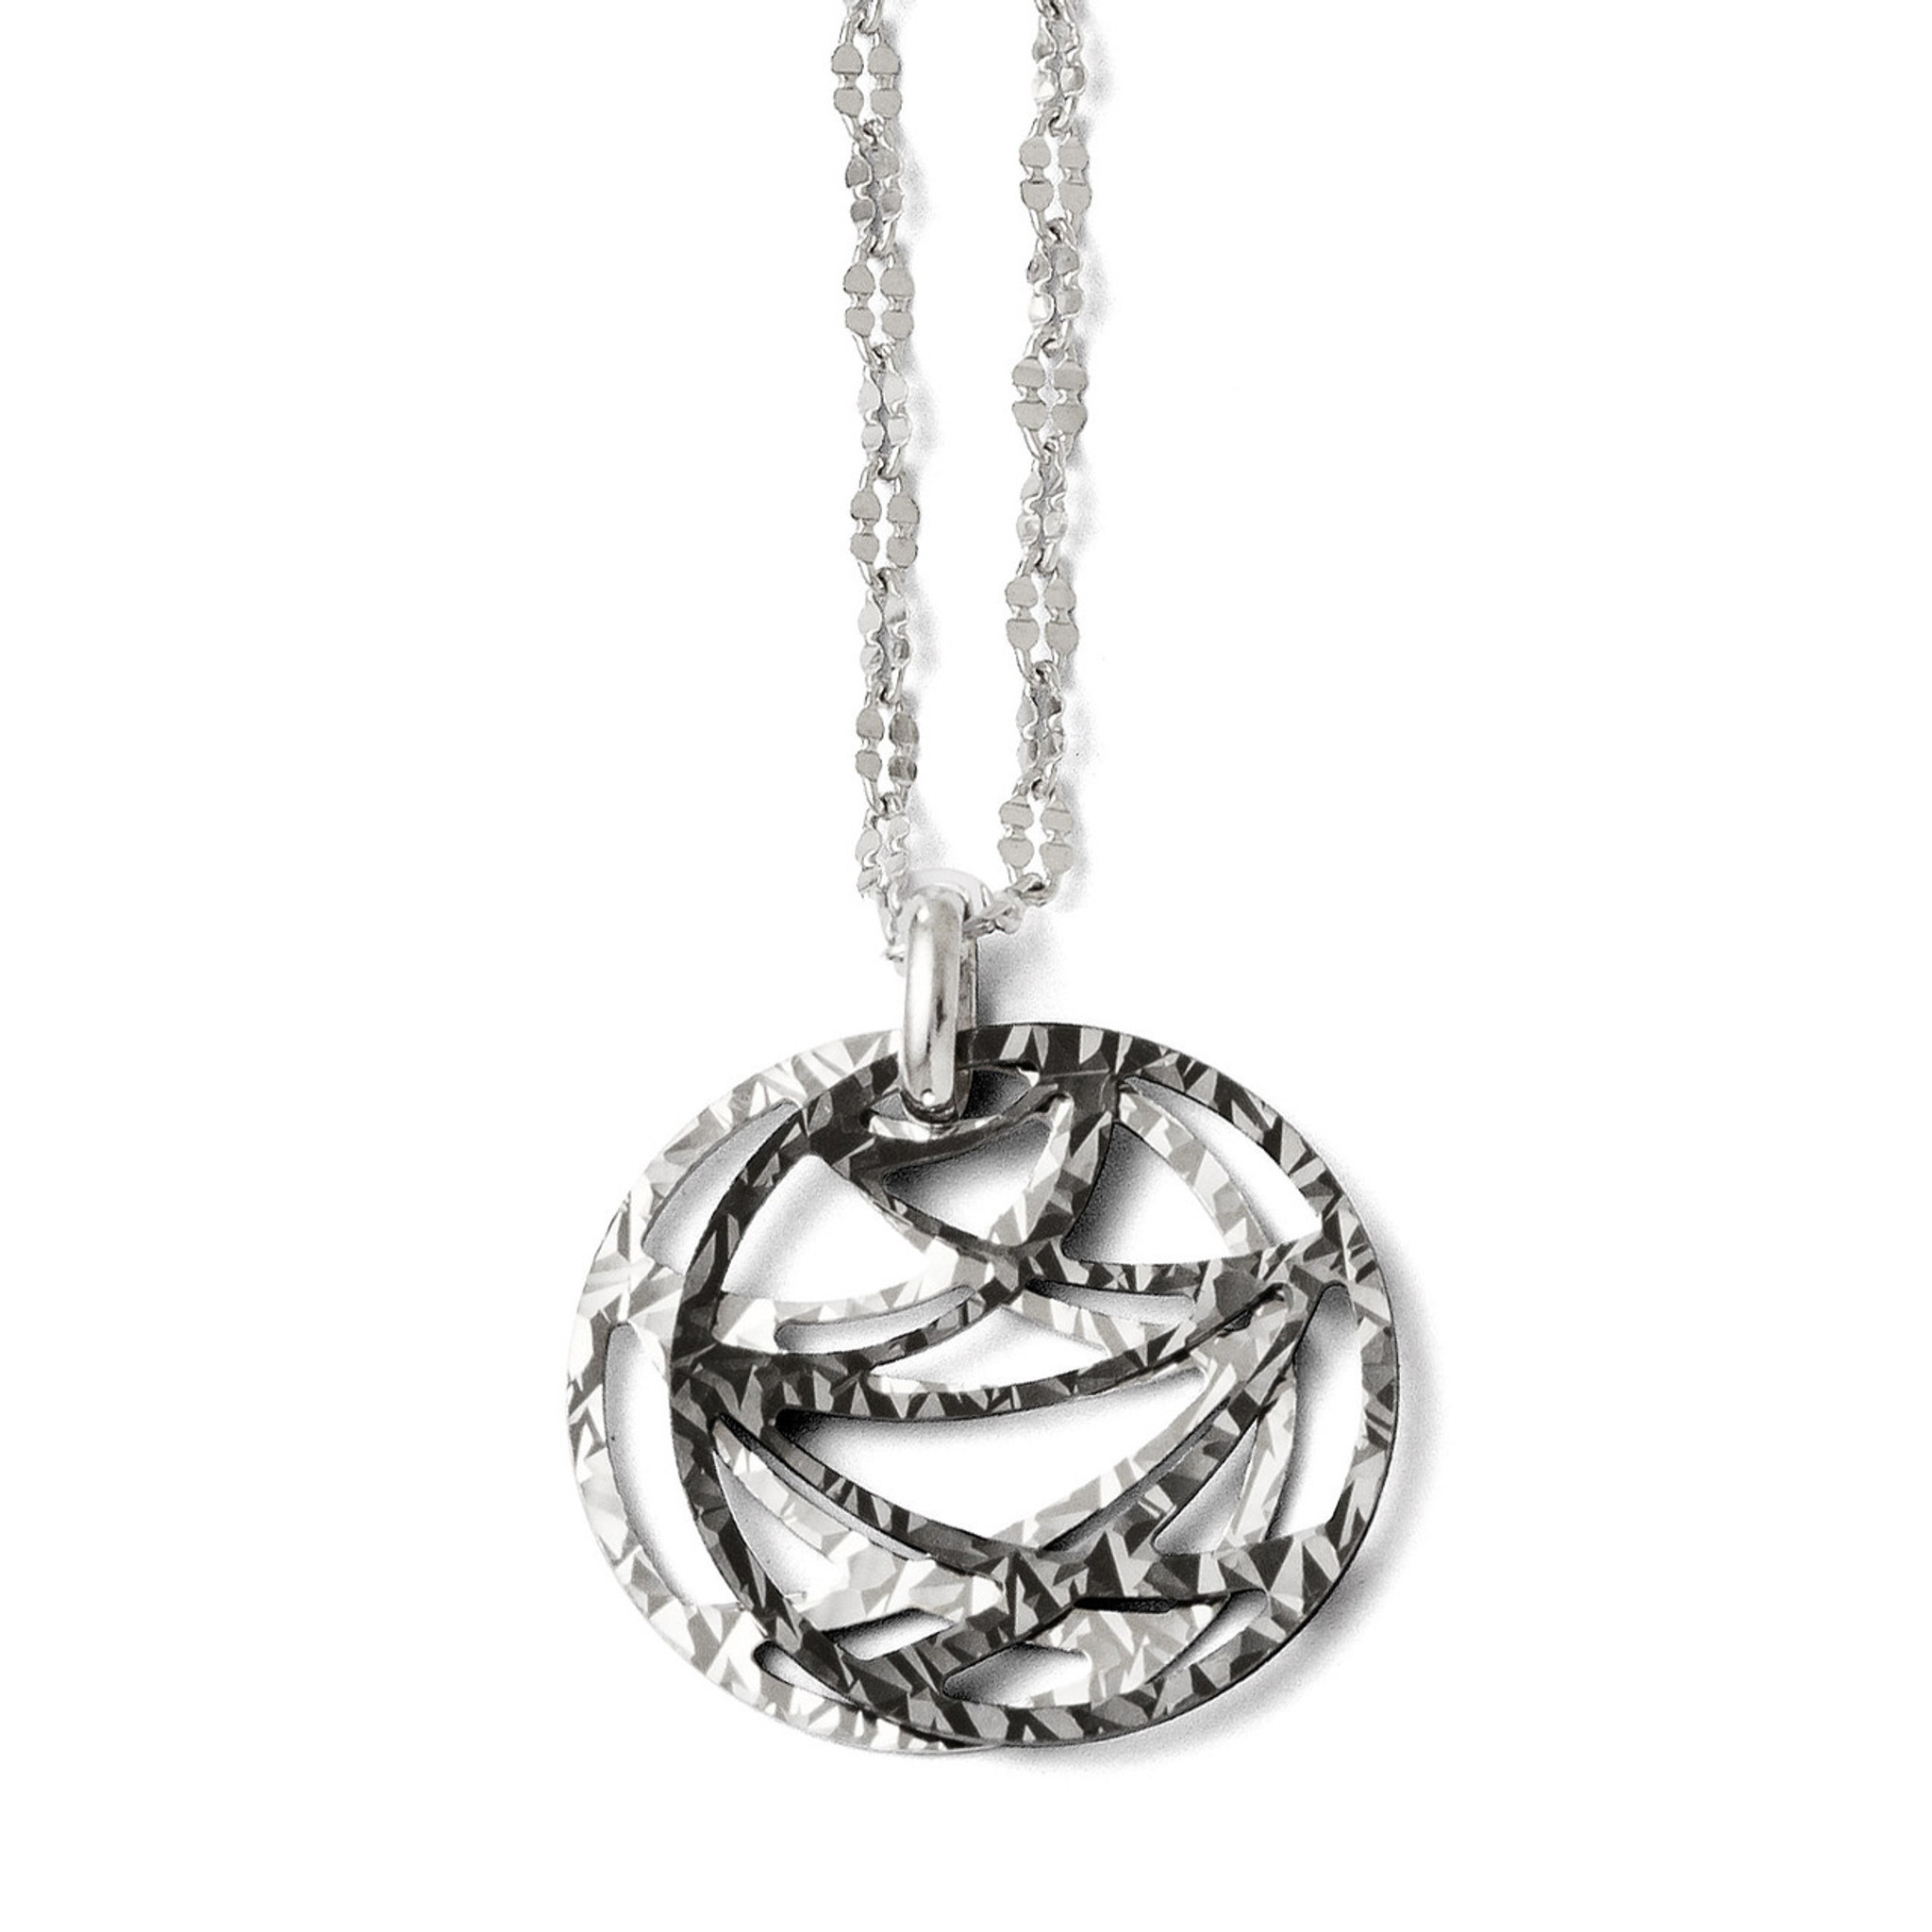 18 in Leslies Sterling Silver Ruthenium-plated Necklace w// 2in ext Sterling Silver Length